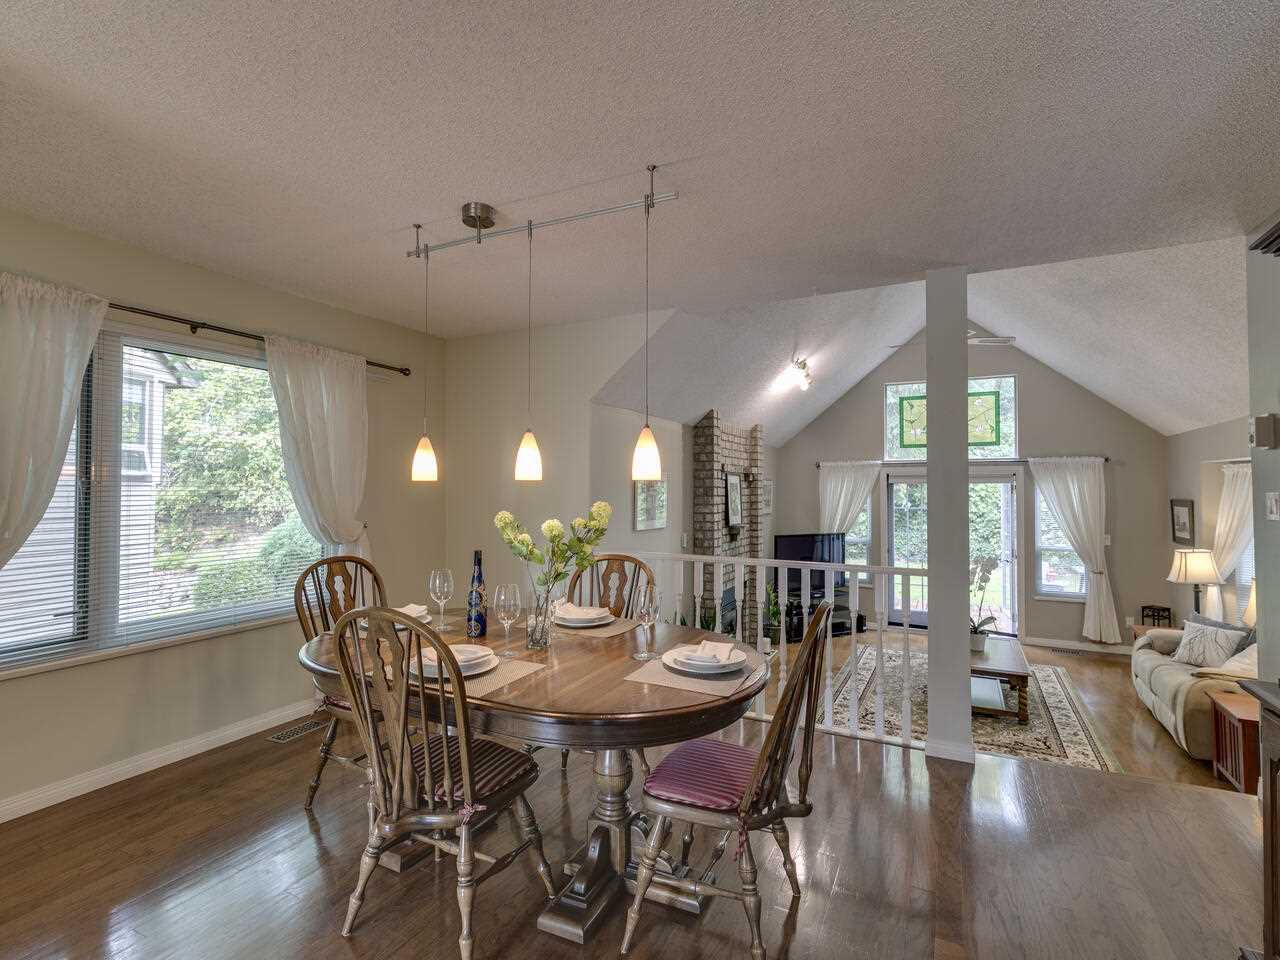 Dining room overlooking vaulted, sunken living room with access to wrap around deck.